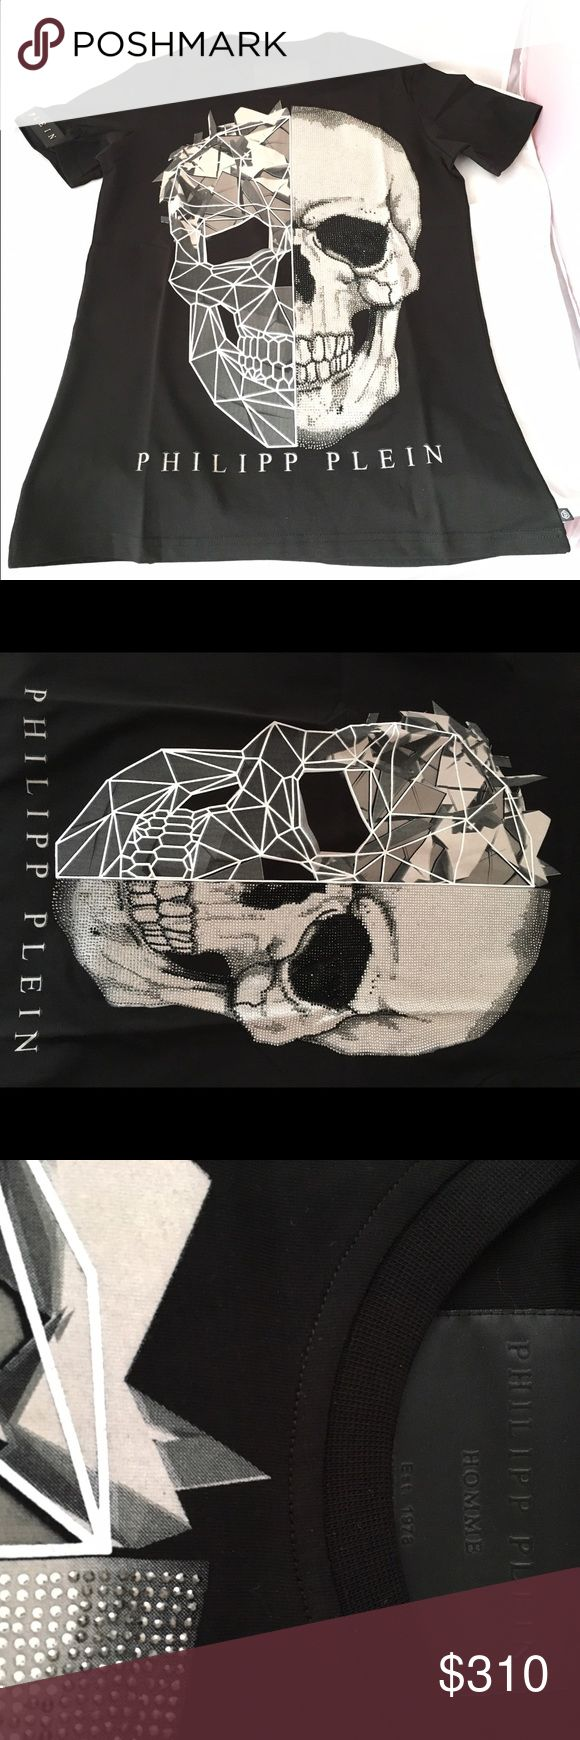 "T-shirt Philipp Plein ""a big trouble"" T-shirt Philipp Plein ""a big trouble"" with an iconic skull in front, Fw16, 100% cotton, new with tags. Philipp Plein Shirts Tees - Short Sleeve"